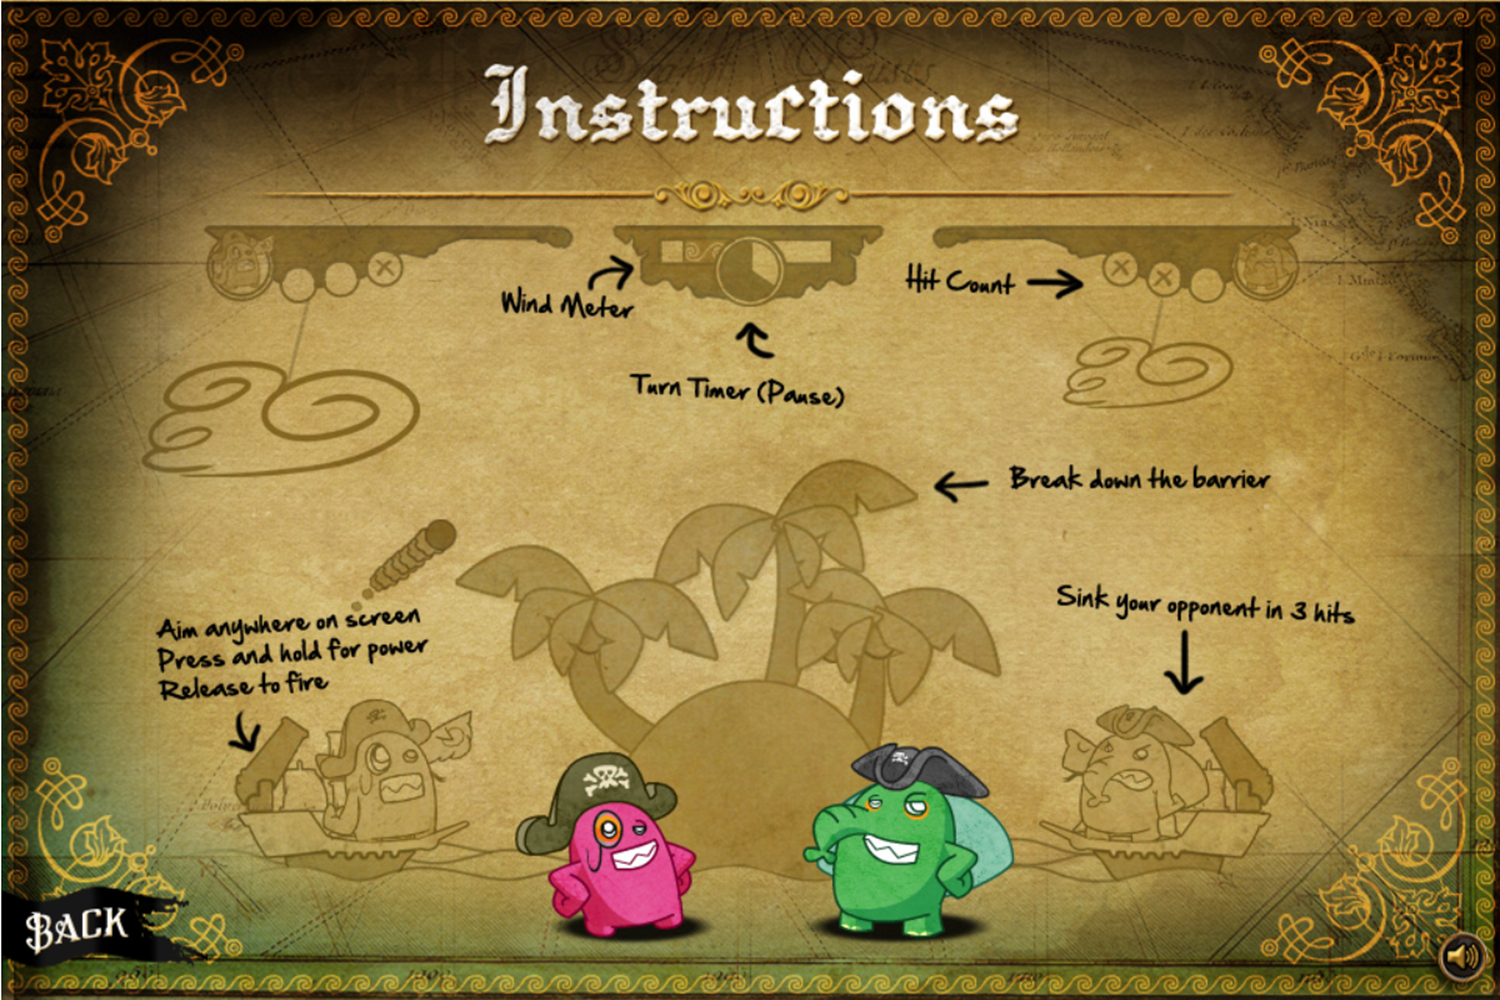 Lux Ahoy Game Instructions Screenshot.